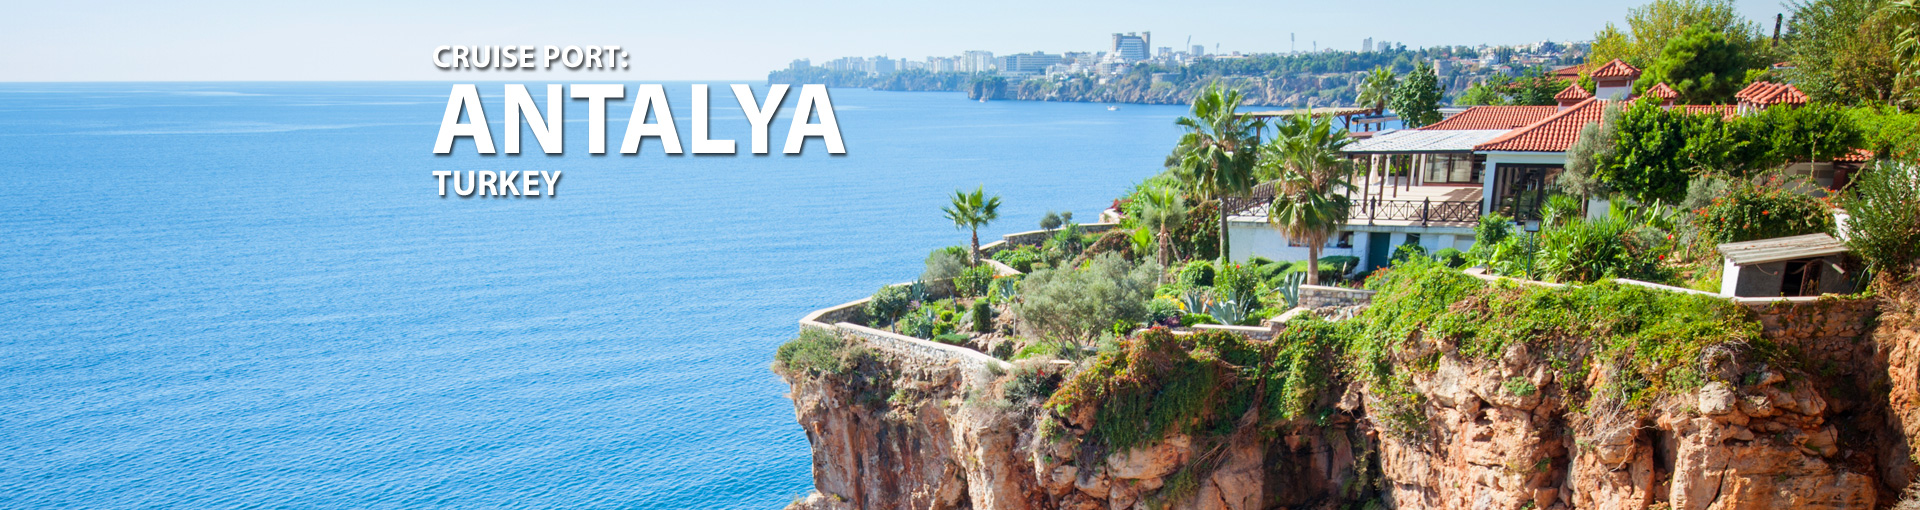 Cruises to Antalya, Turkey